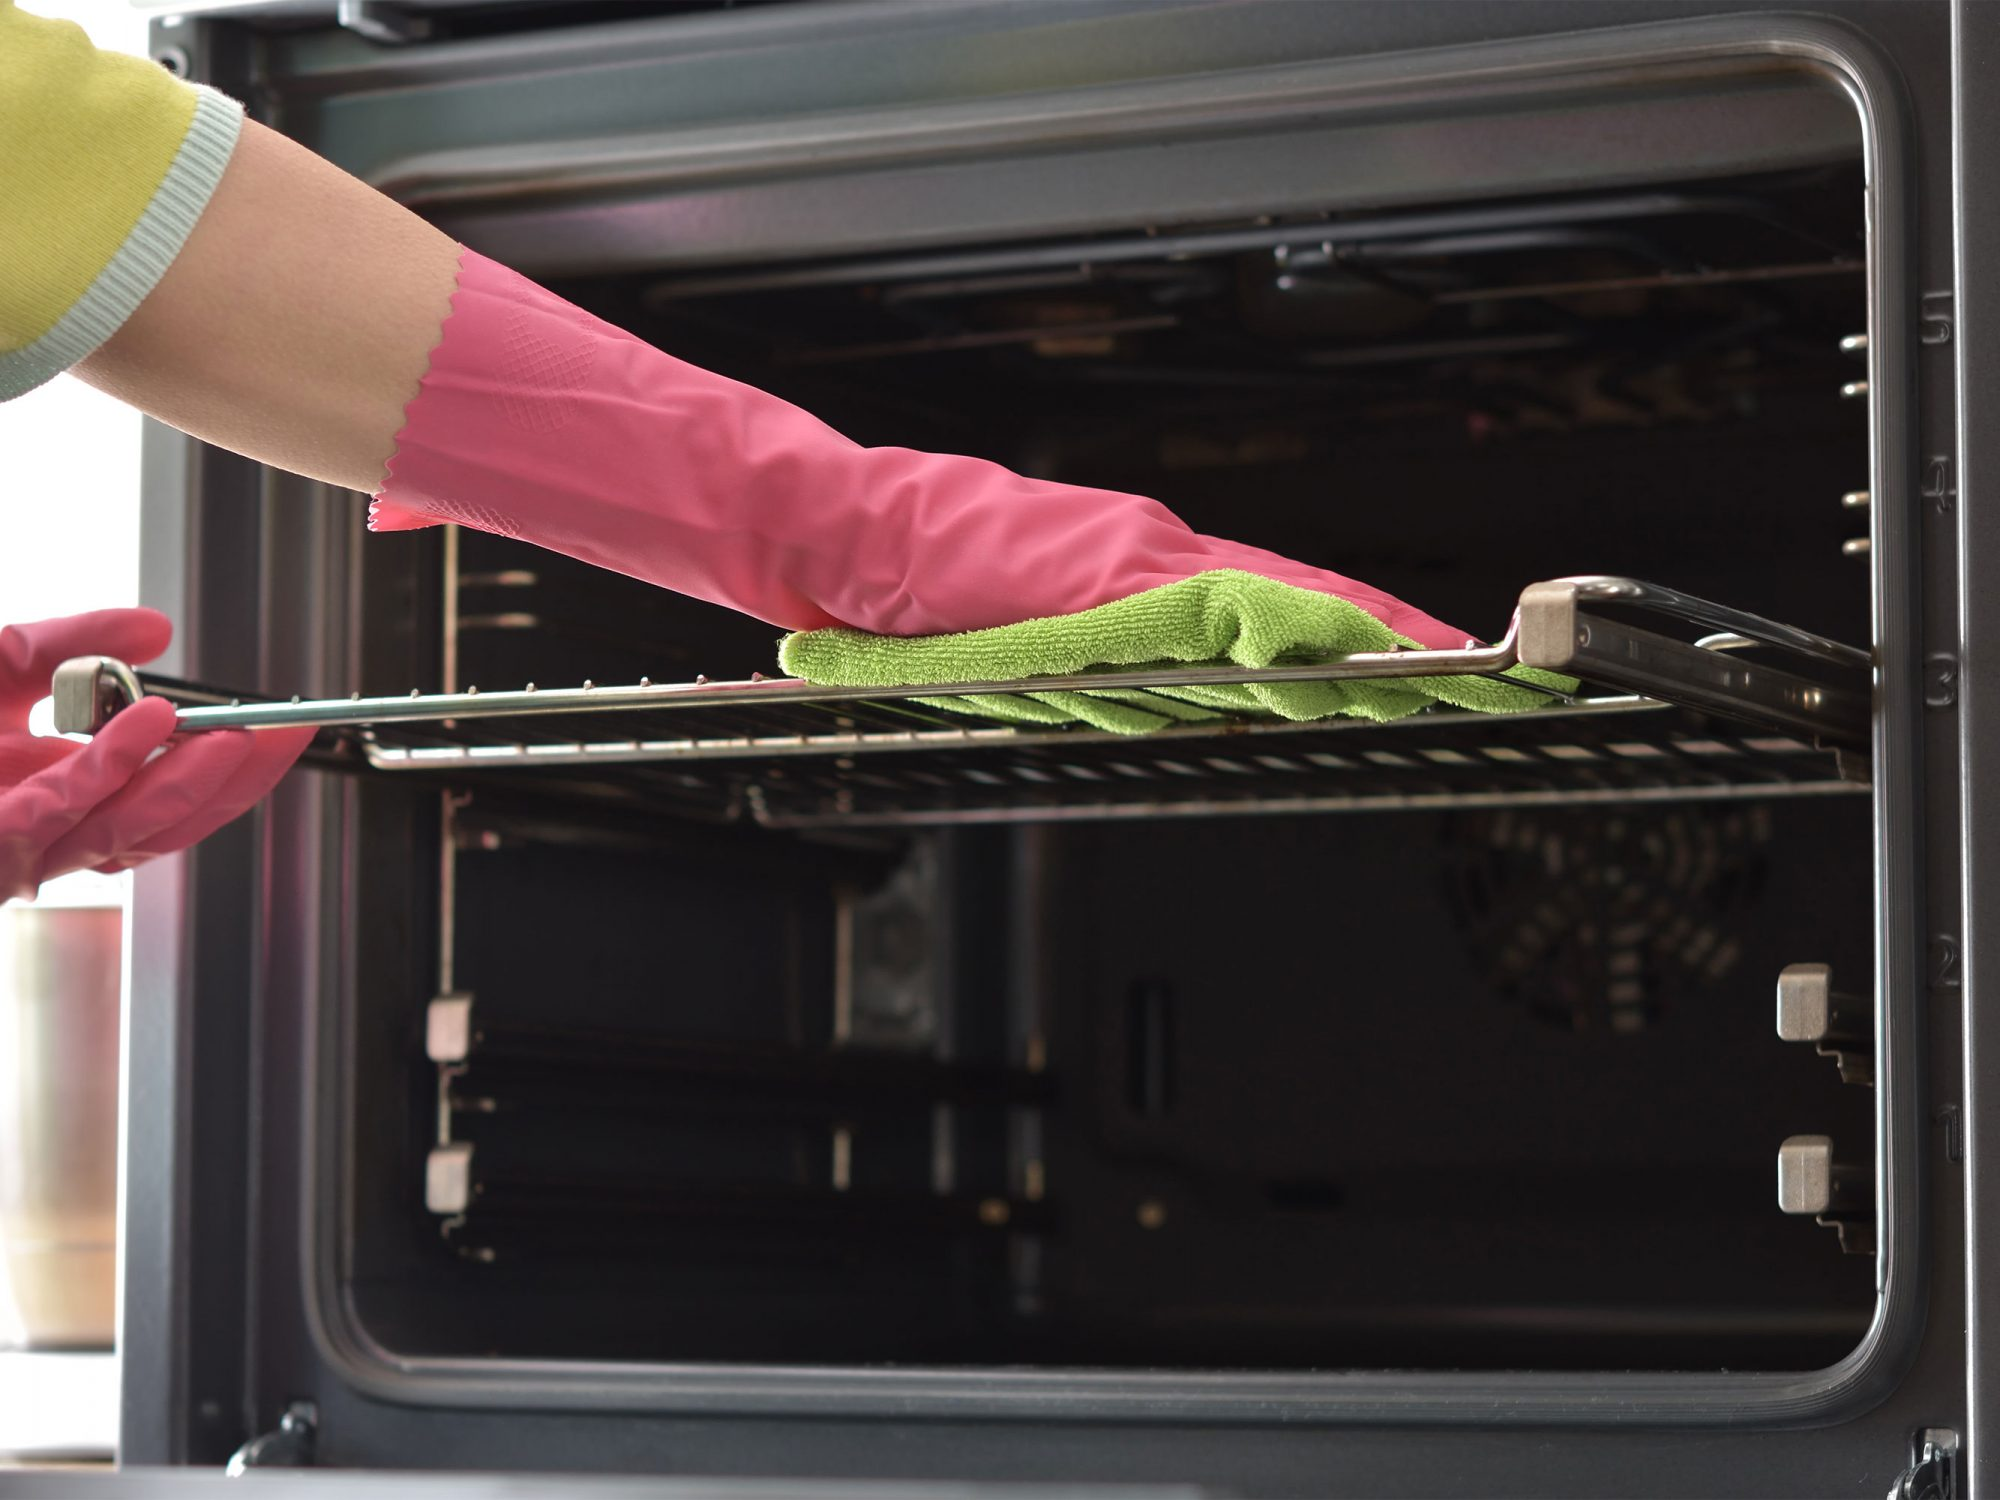 cleaning oven with dish towel